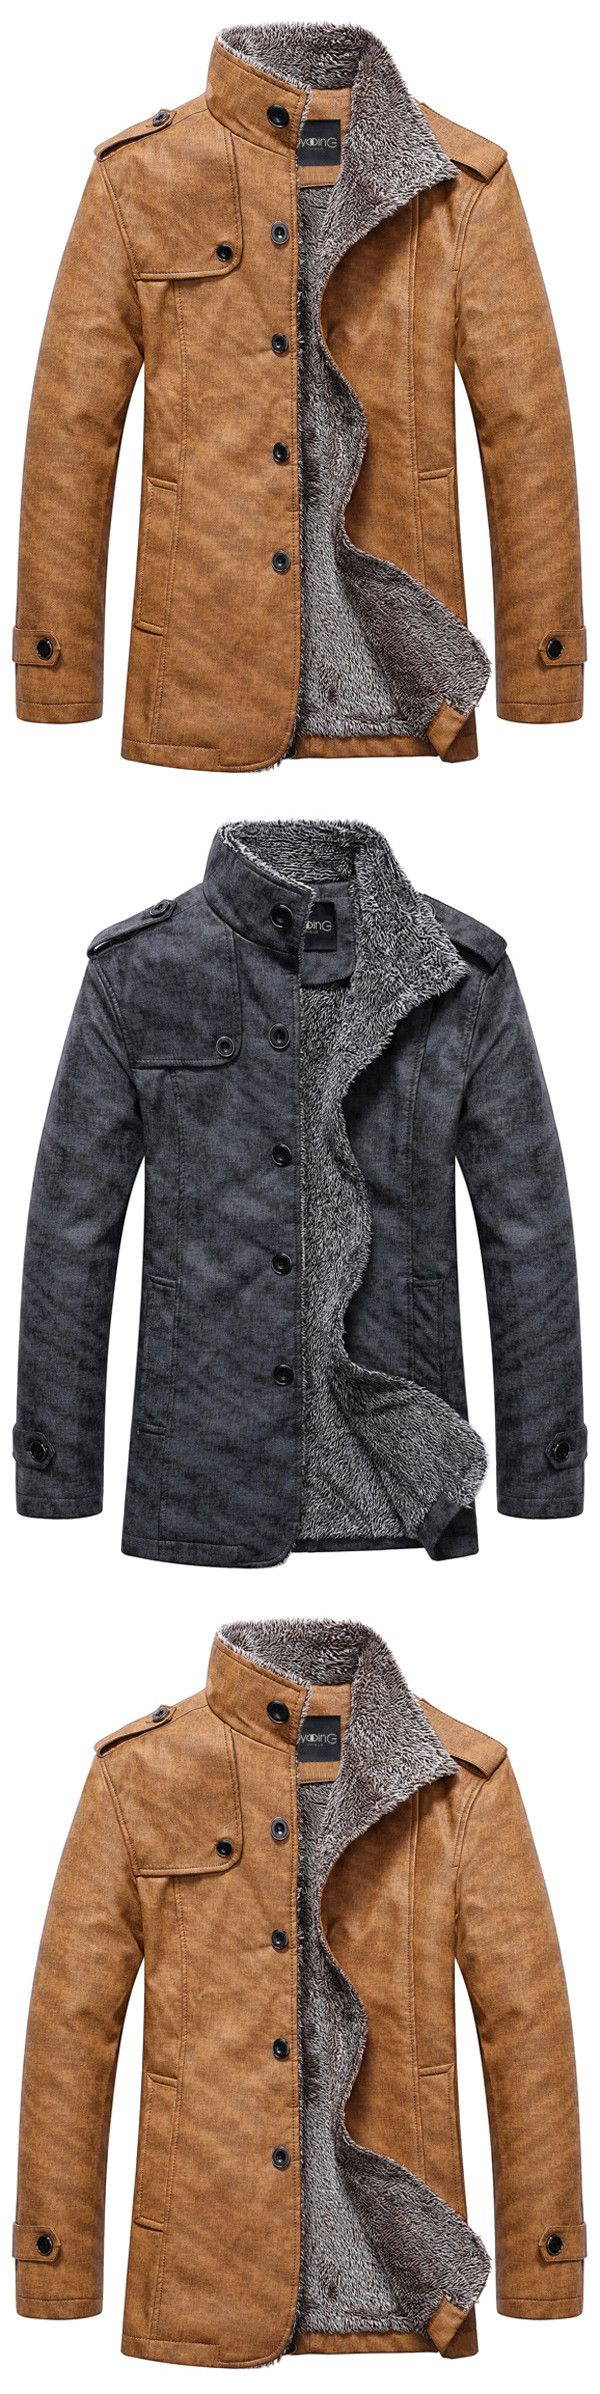 Men's fashion-Jackets & Coats